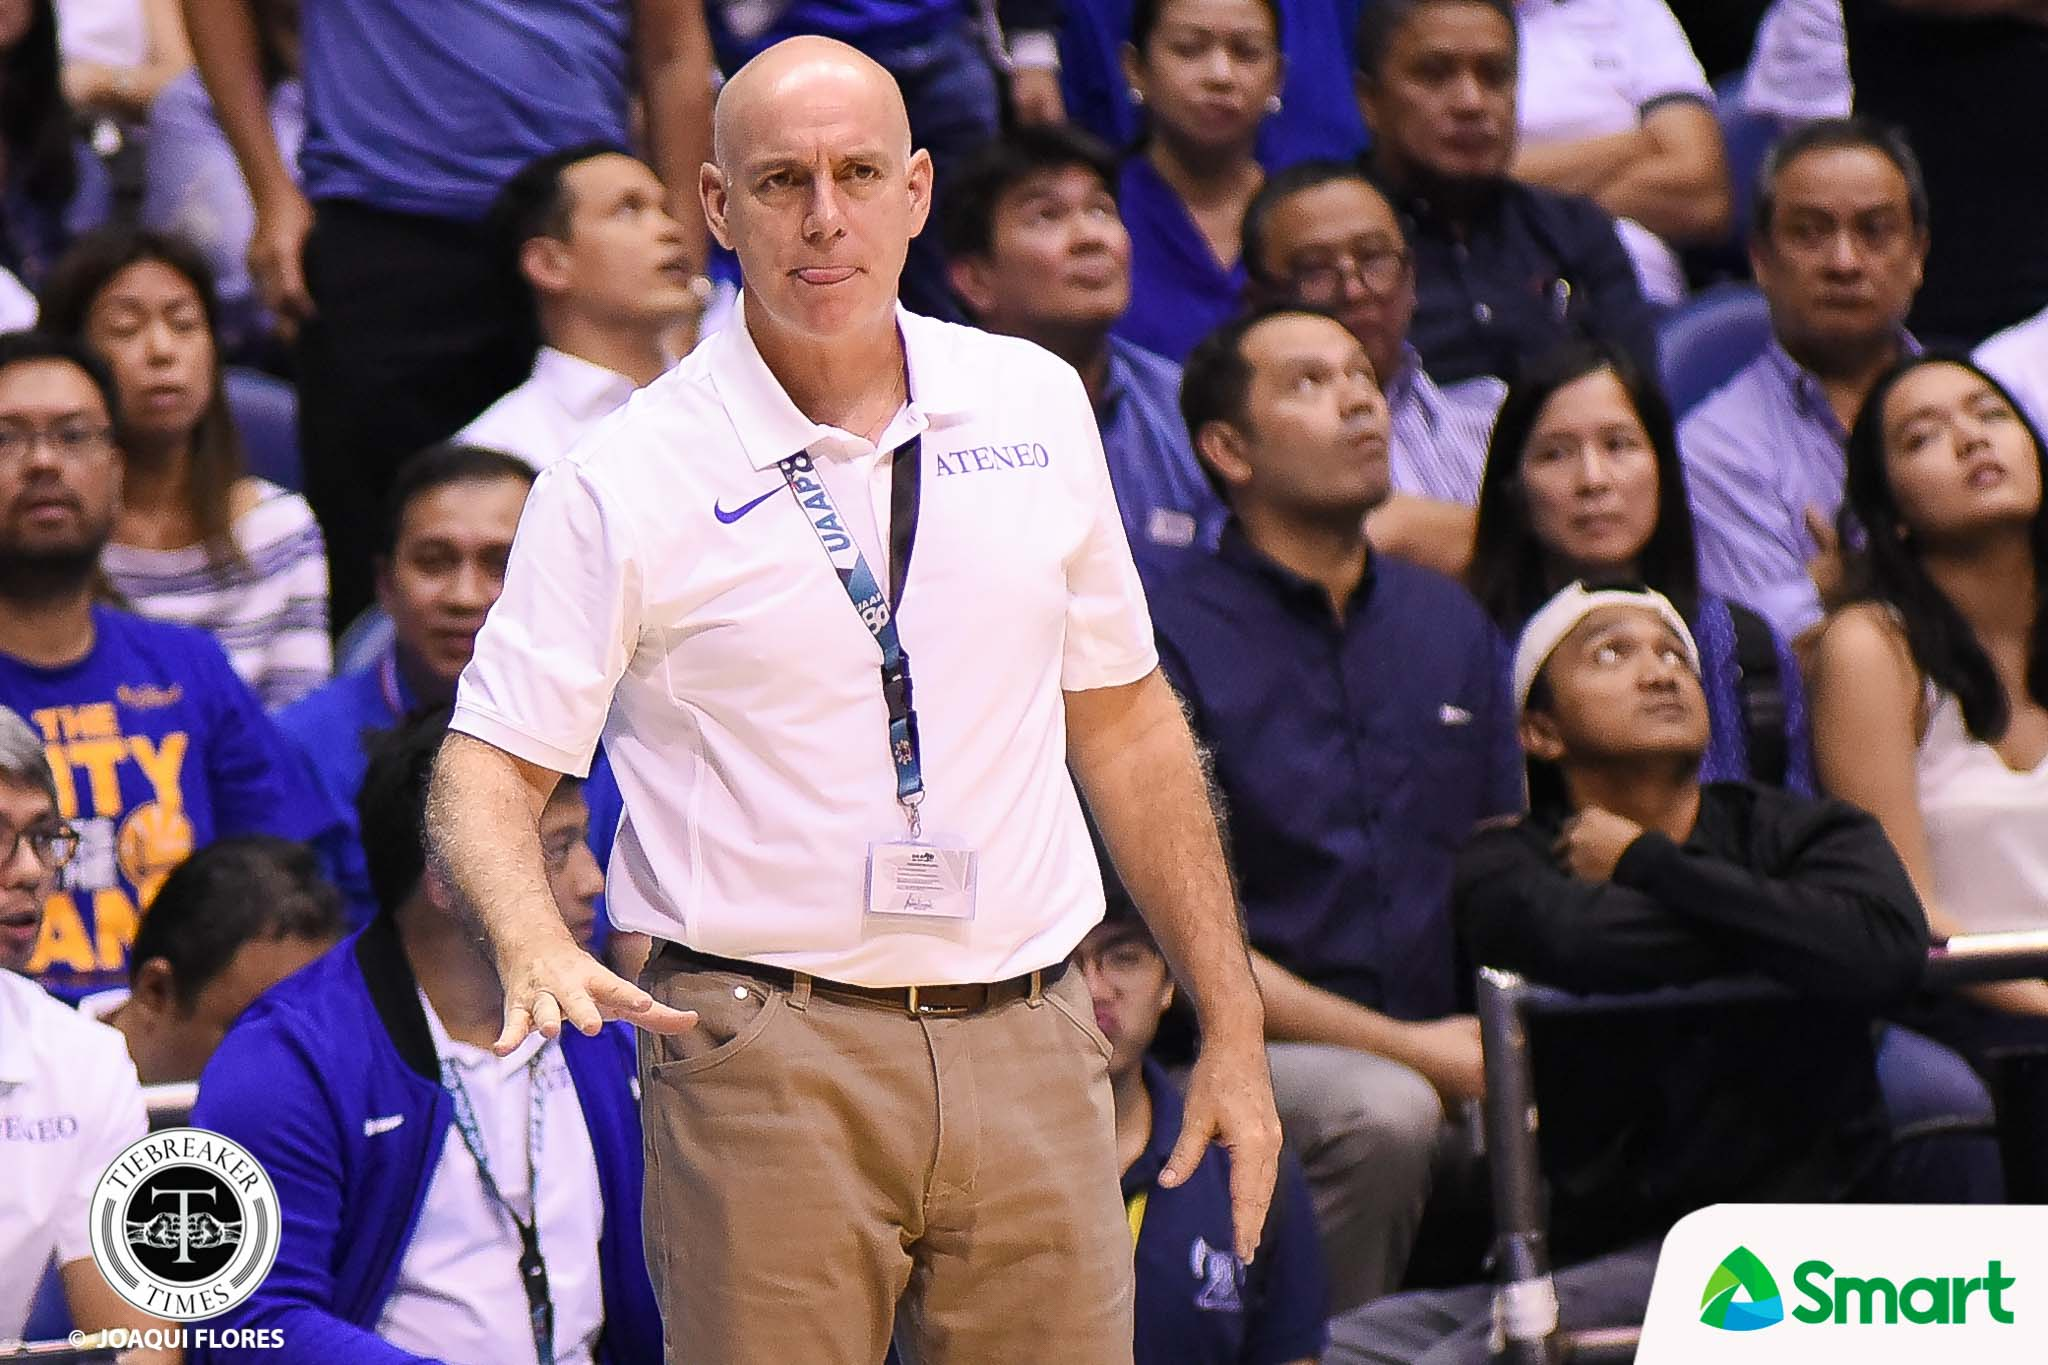 Philippine Sports News - Tiebreaker Times With momentum on La Salle's side, Tab Baldwin makes sure Ateneo forgets about Game 2 ADMU Basketball News UAAP  UAAP Season 80 Men's Basketball UAAP Season 80 Tab Baldwin Ateneo Men's Basketball